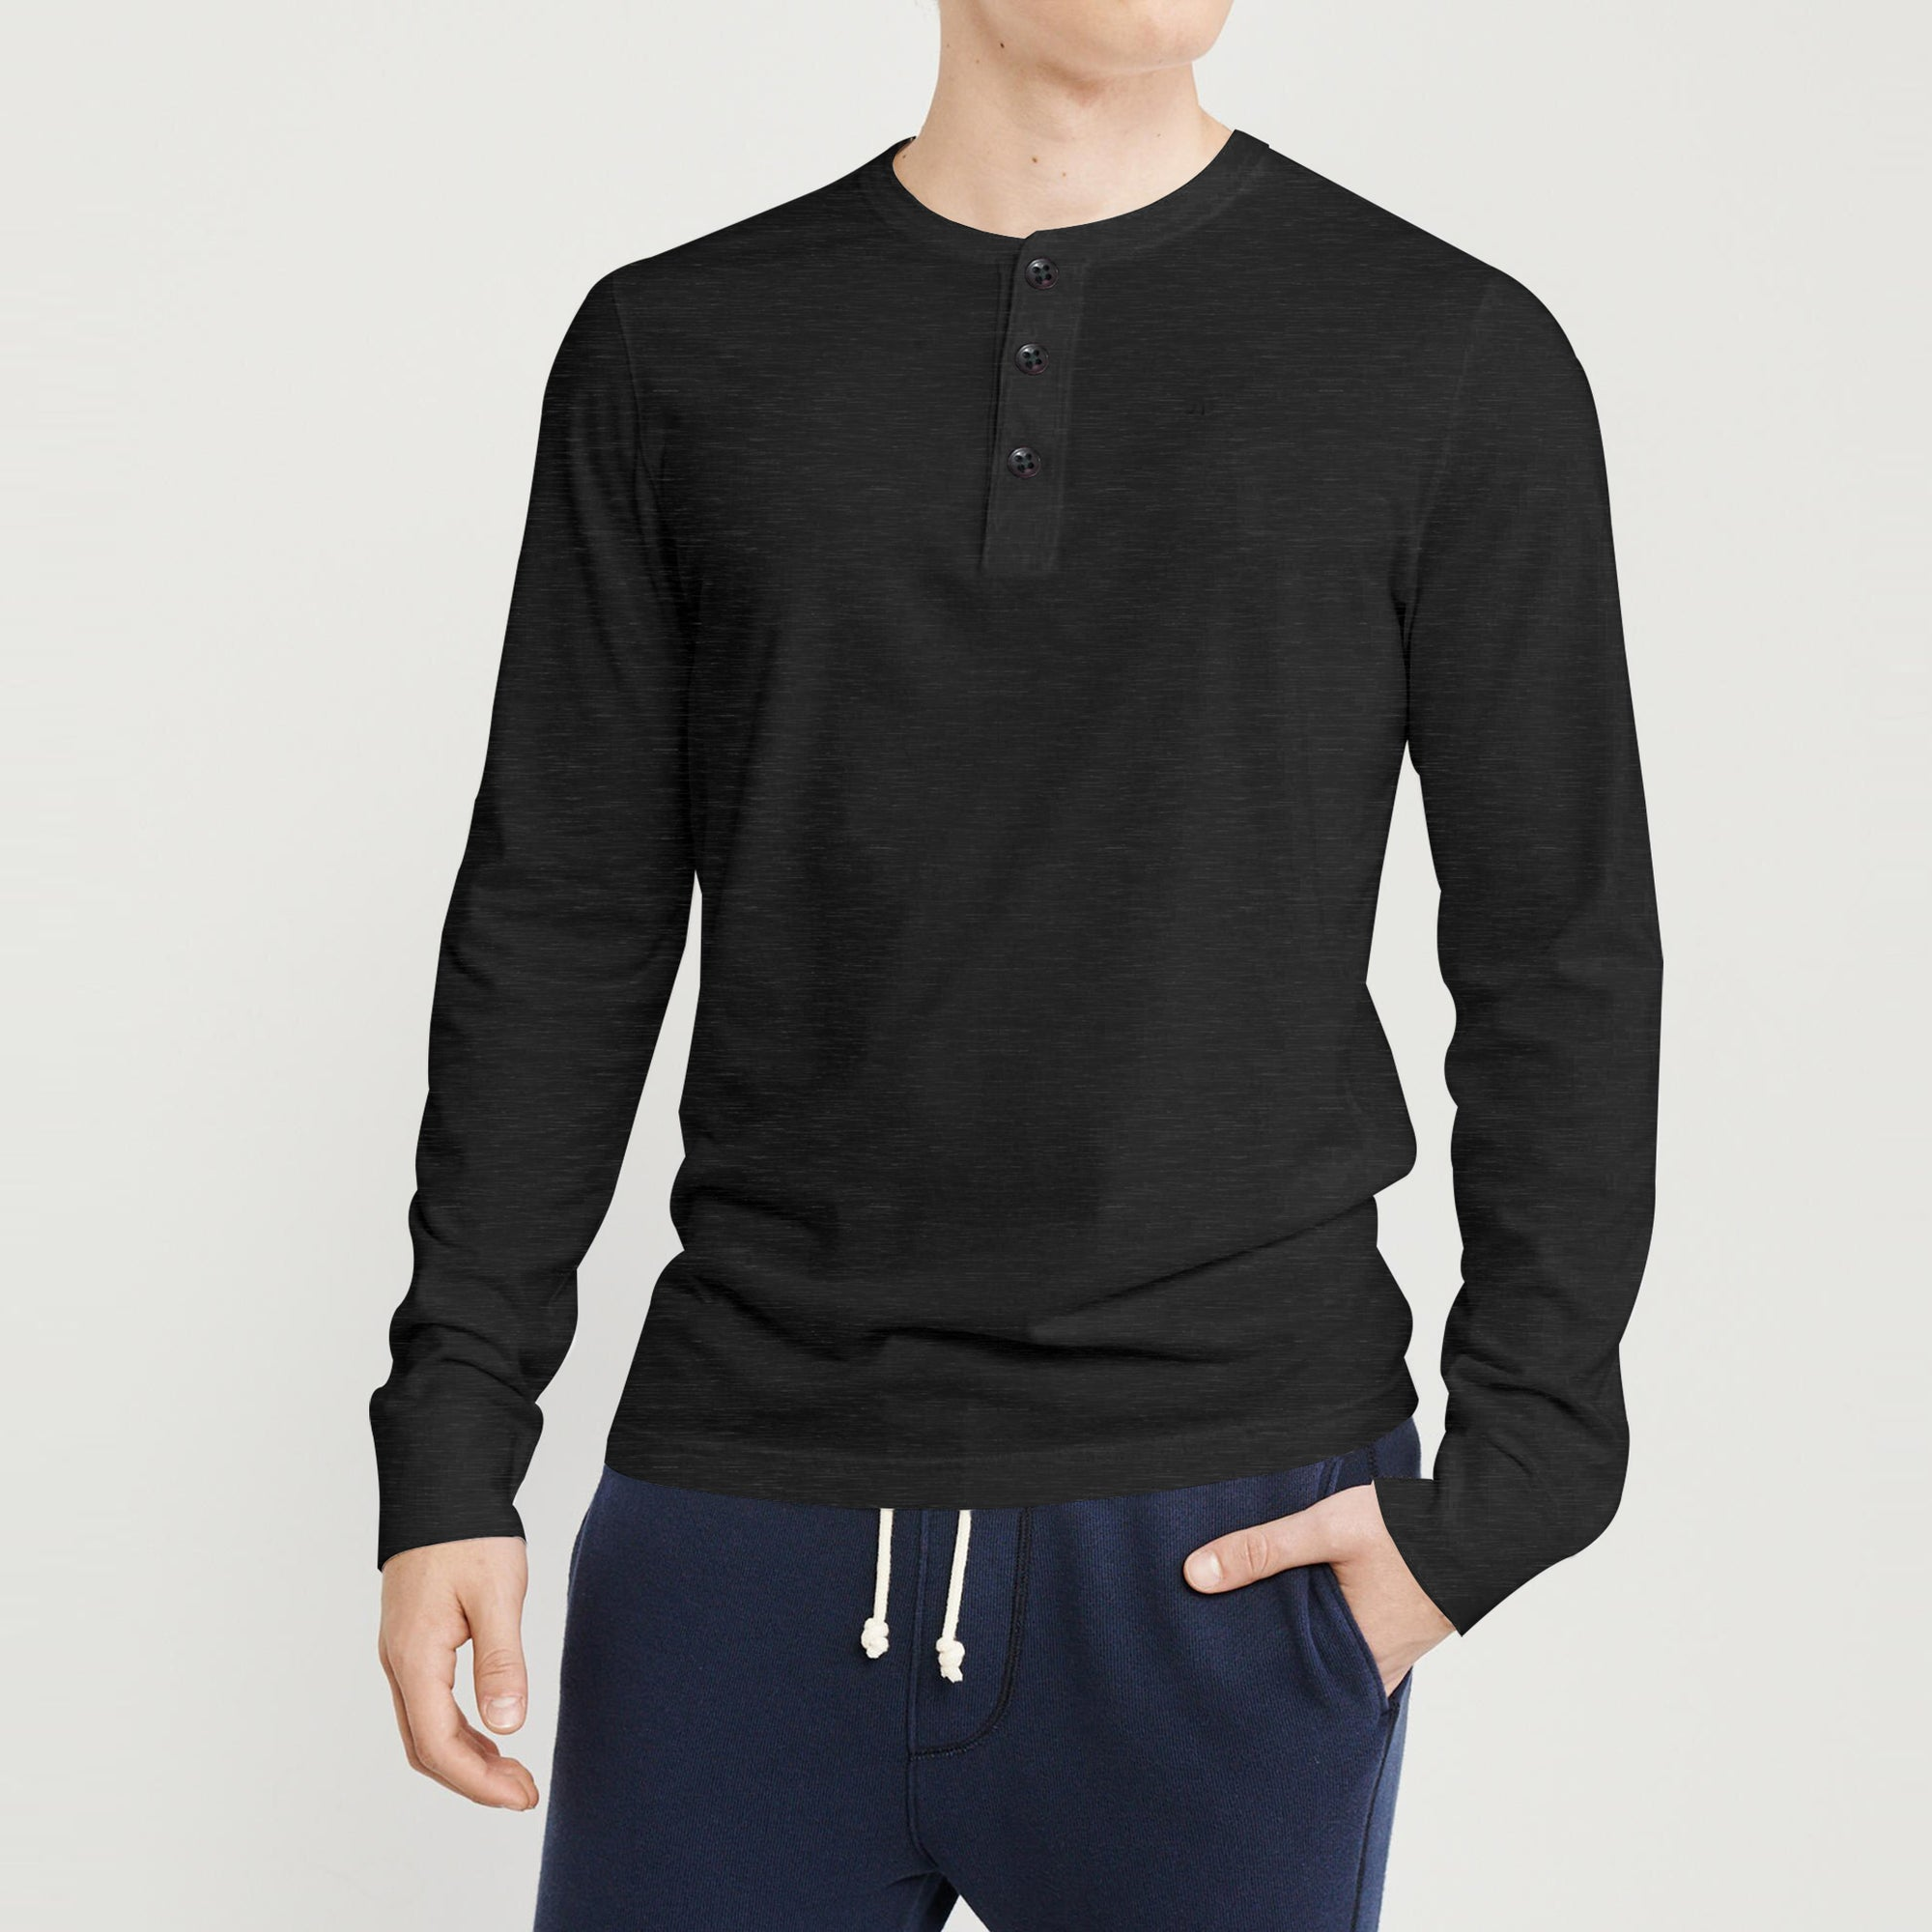 brandsego - Beverly Hills Henley Full Sleeve Tee Shirt For Men-SP112